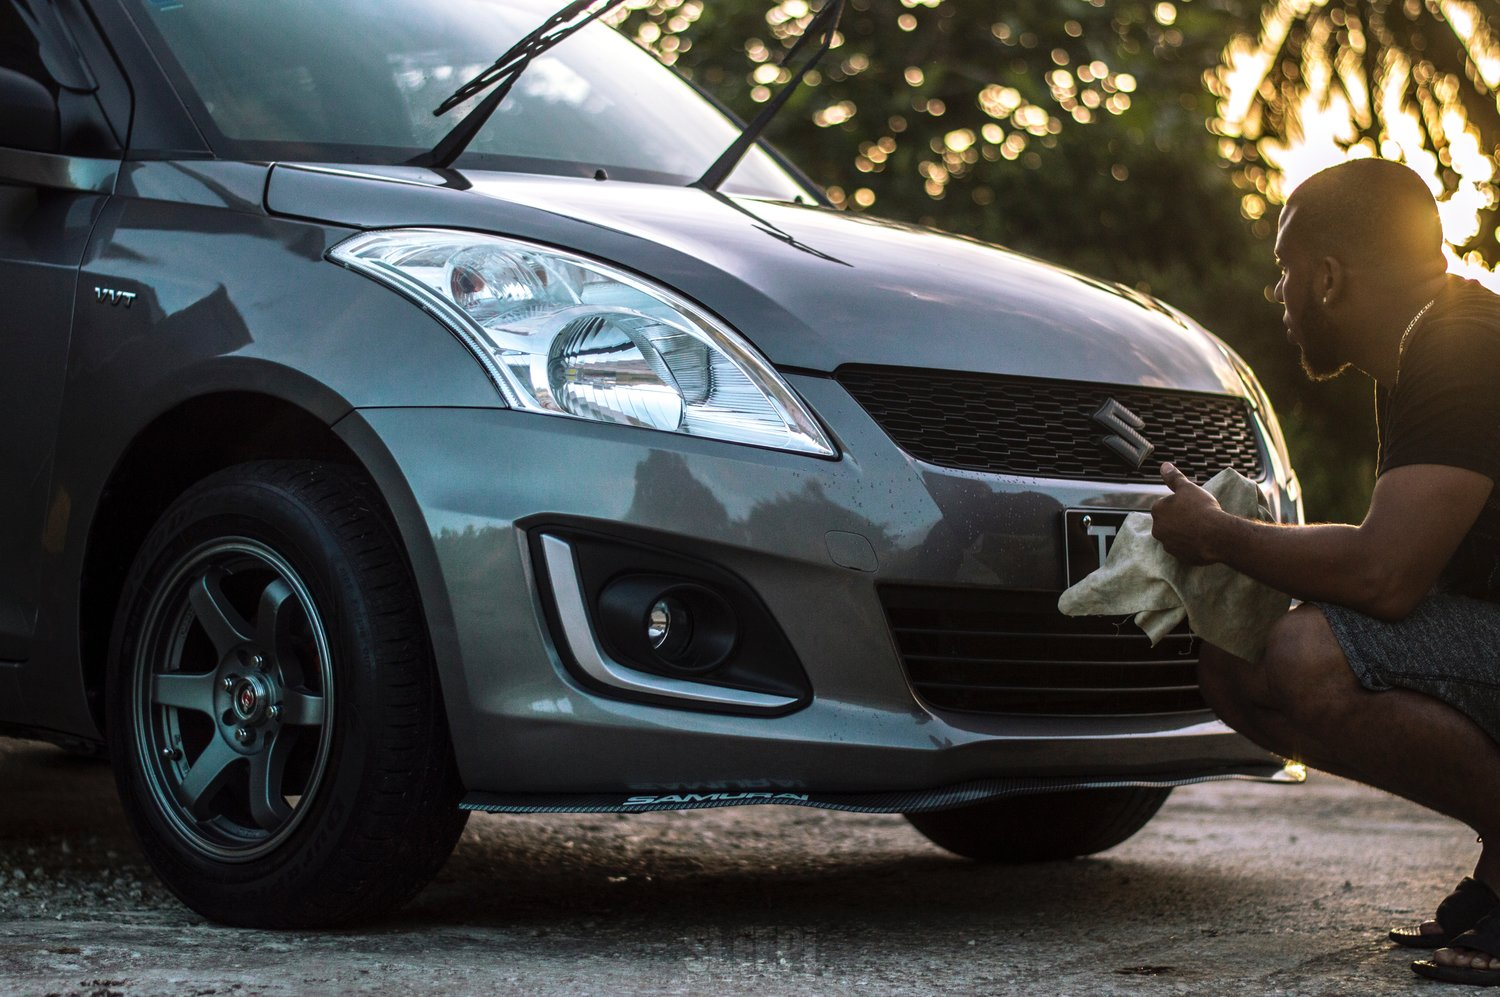 10 Ways to Maintain Your Car in the Best Way